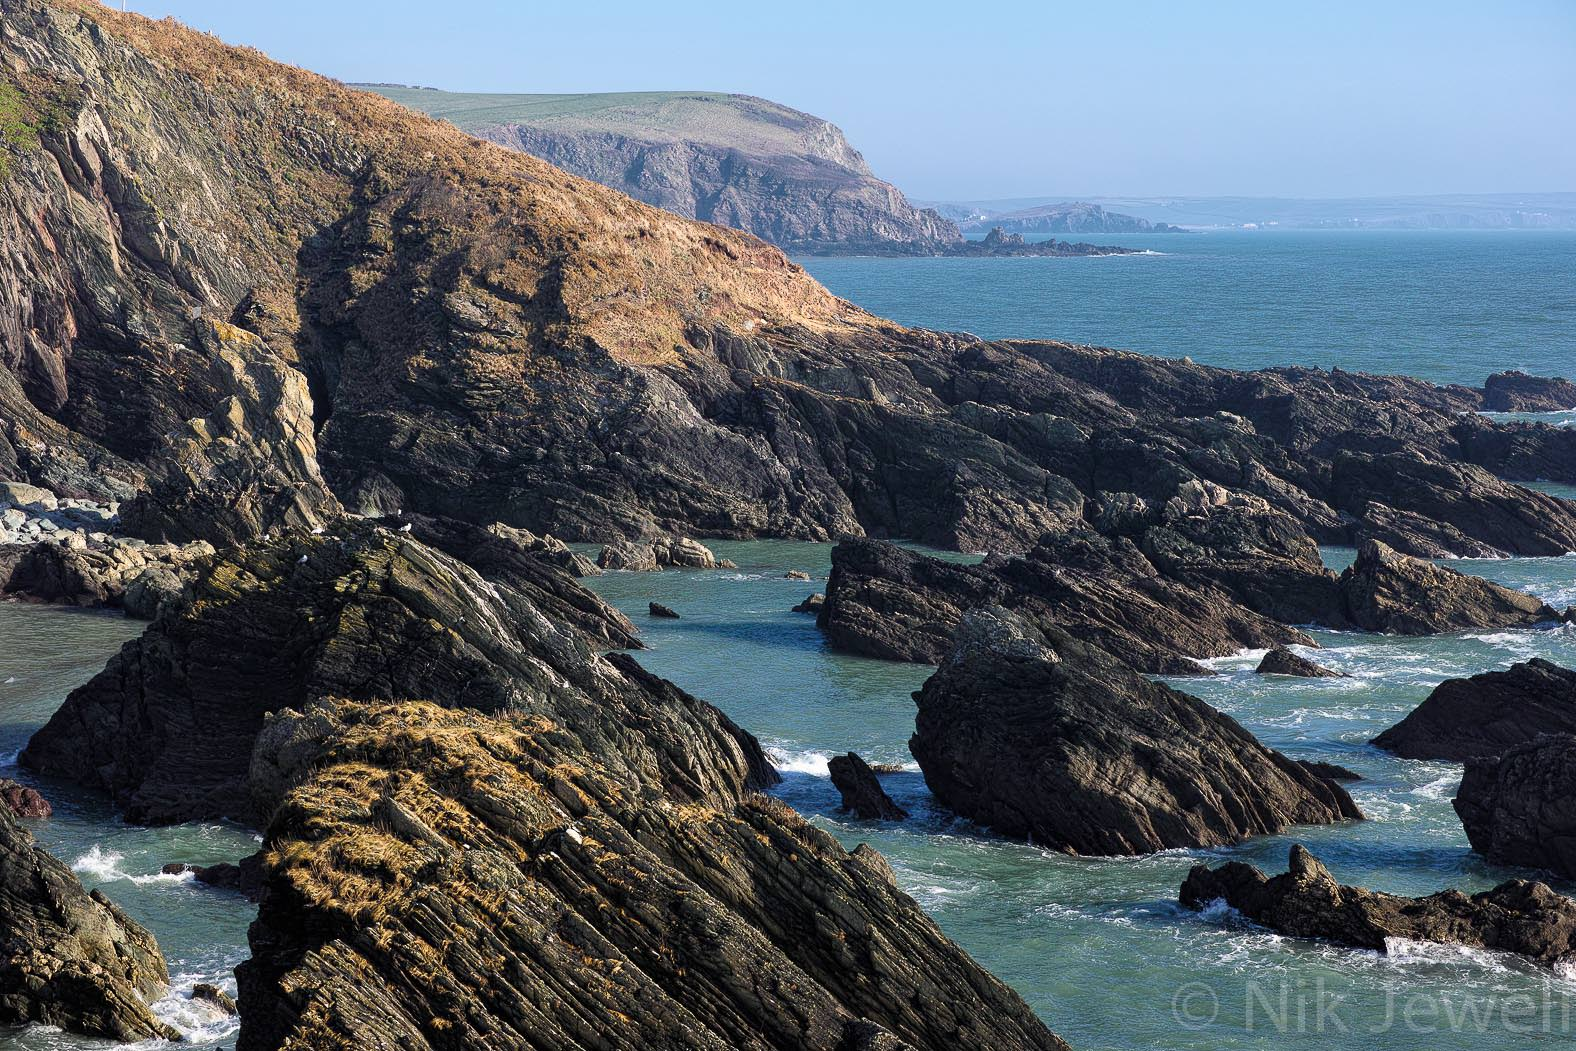 The jagged rocks of Bugle Hole near Mothecombe in the South Hams of Devon